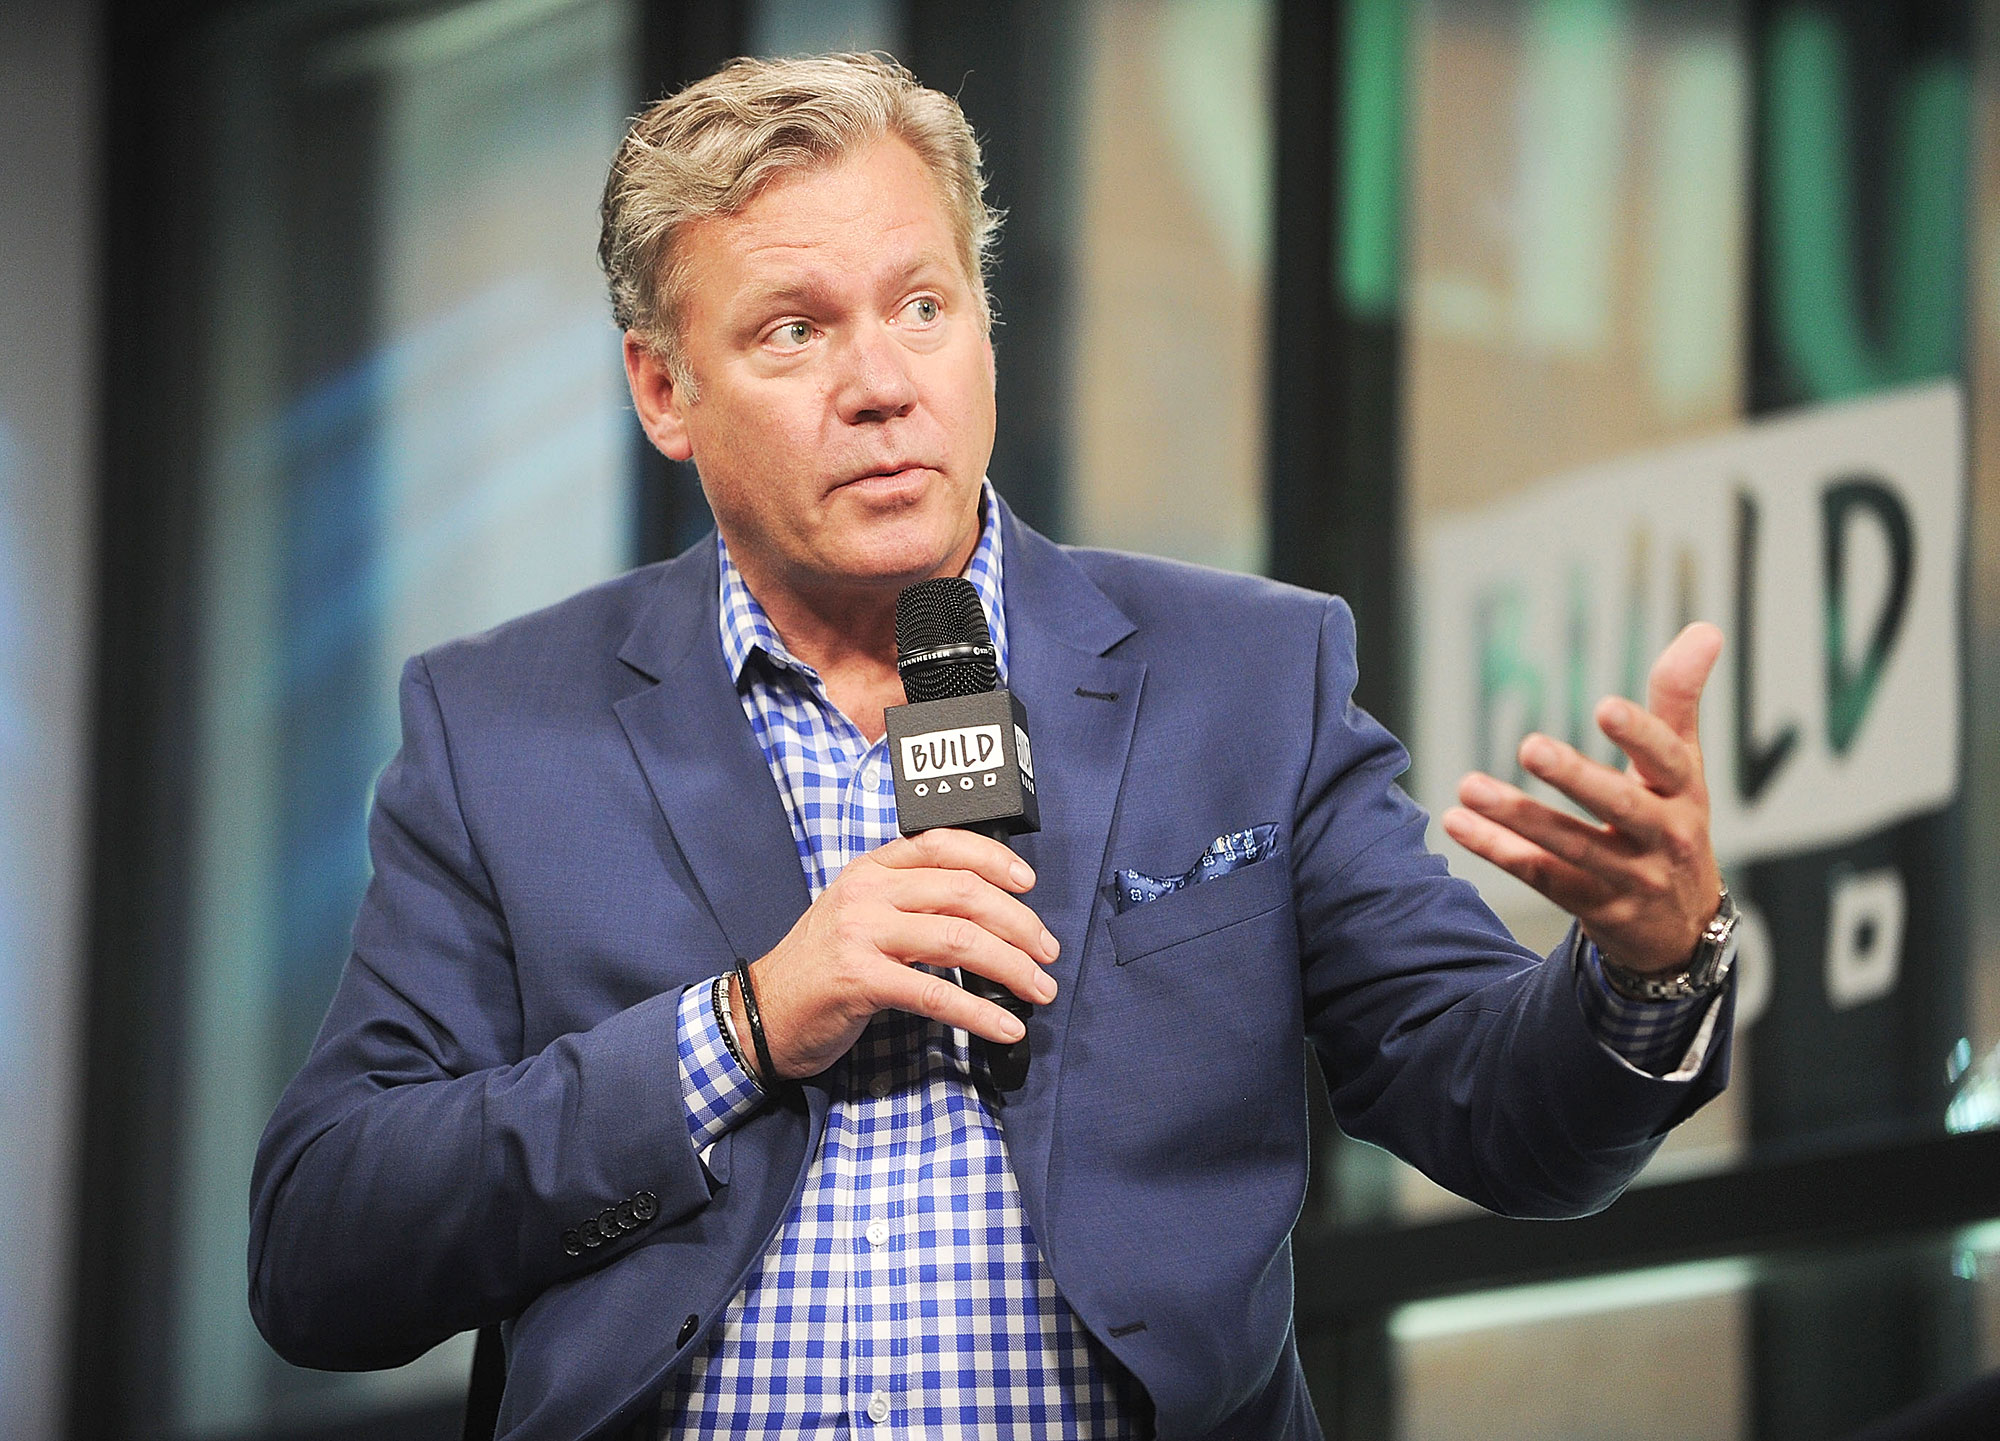 To Catch a Predators Chris Hansen Charged With Bouncing Checks